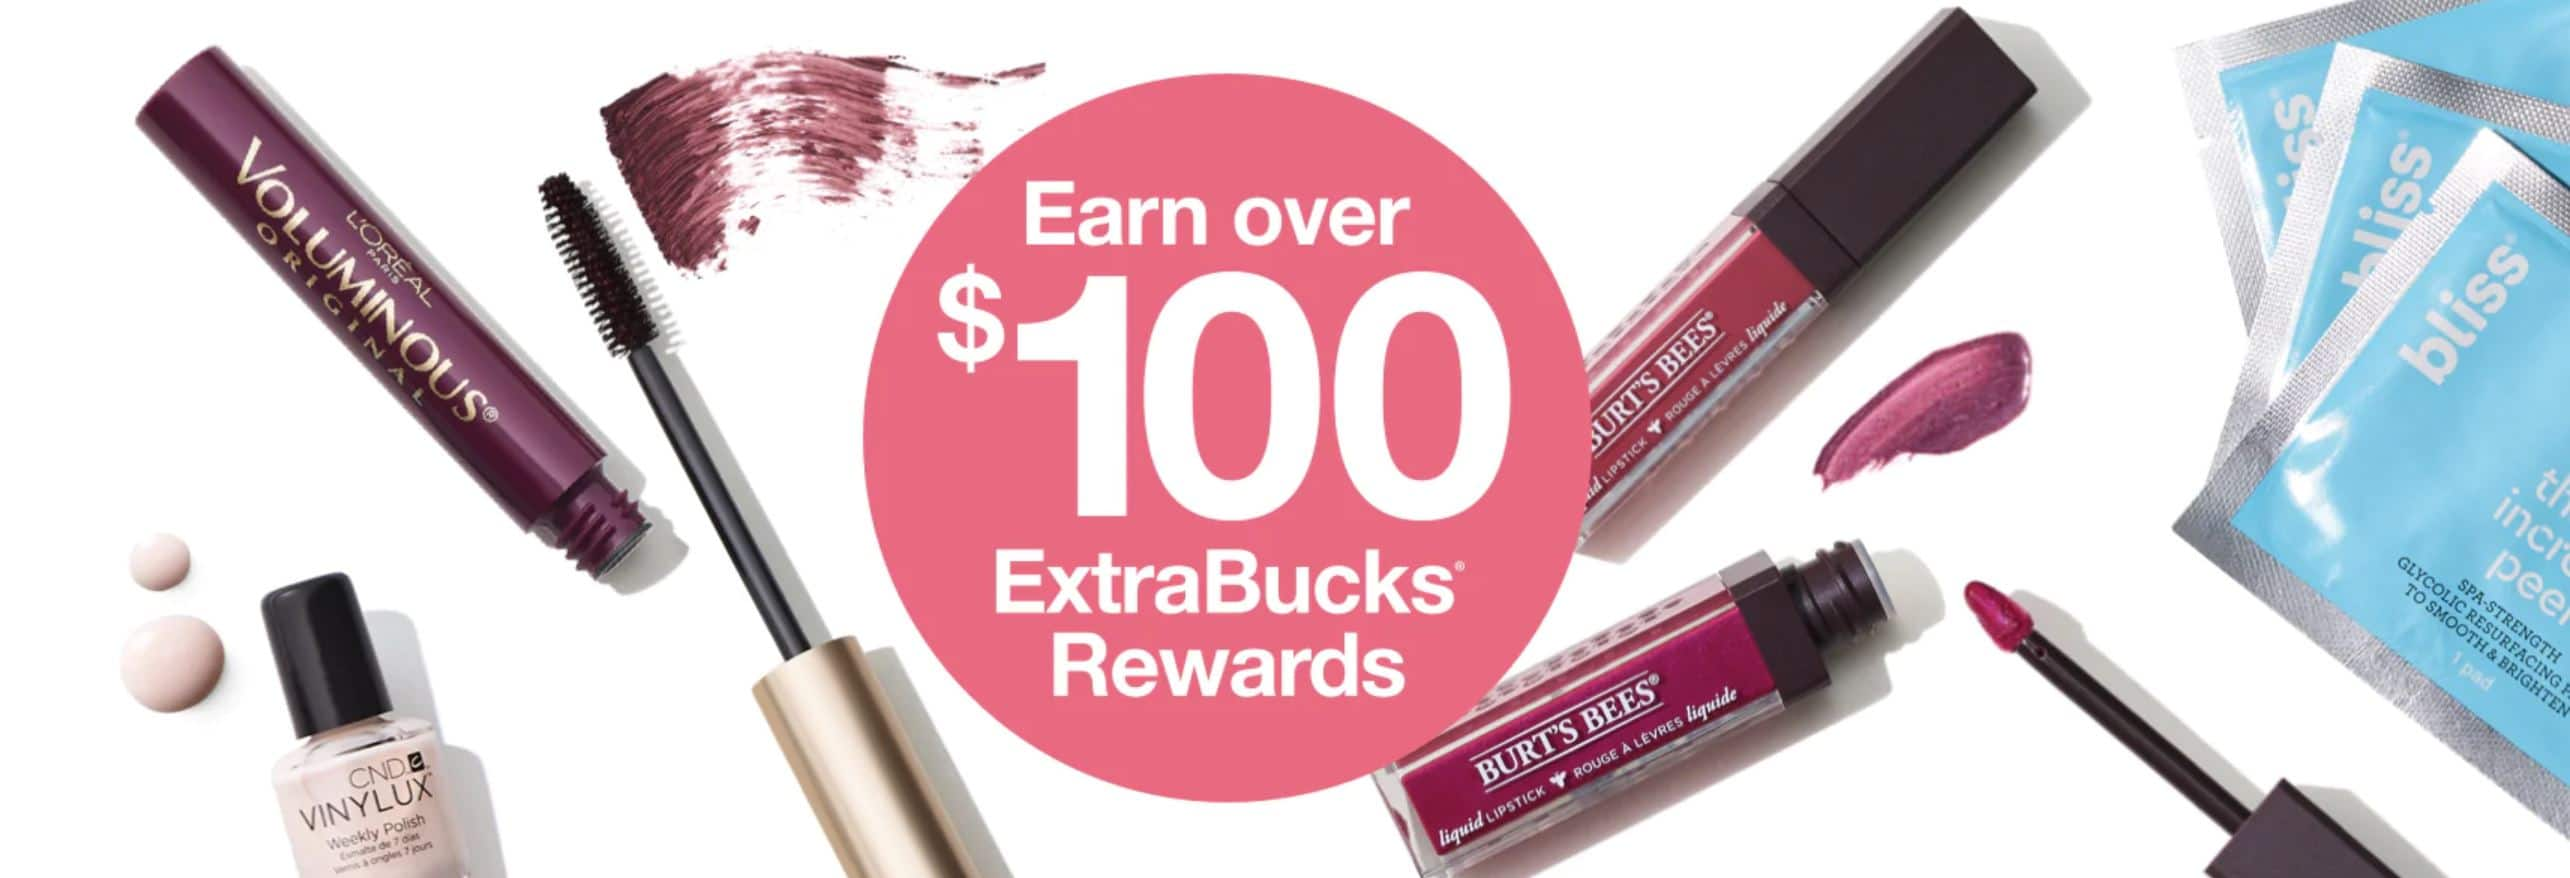 CVS: Earn over $100 ExtraBucks everyday during the Epic Beauty Event (9/1 - 9/27)